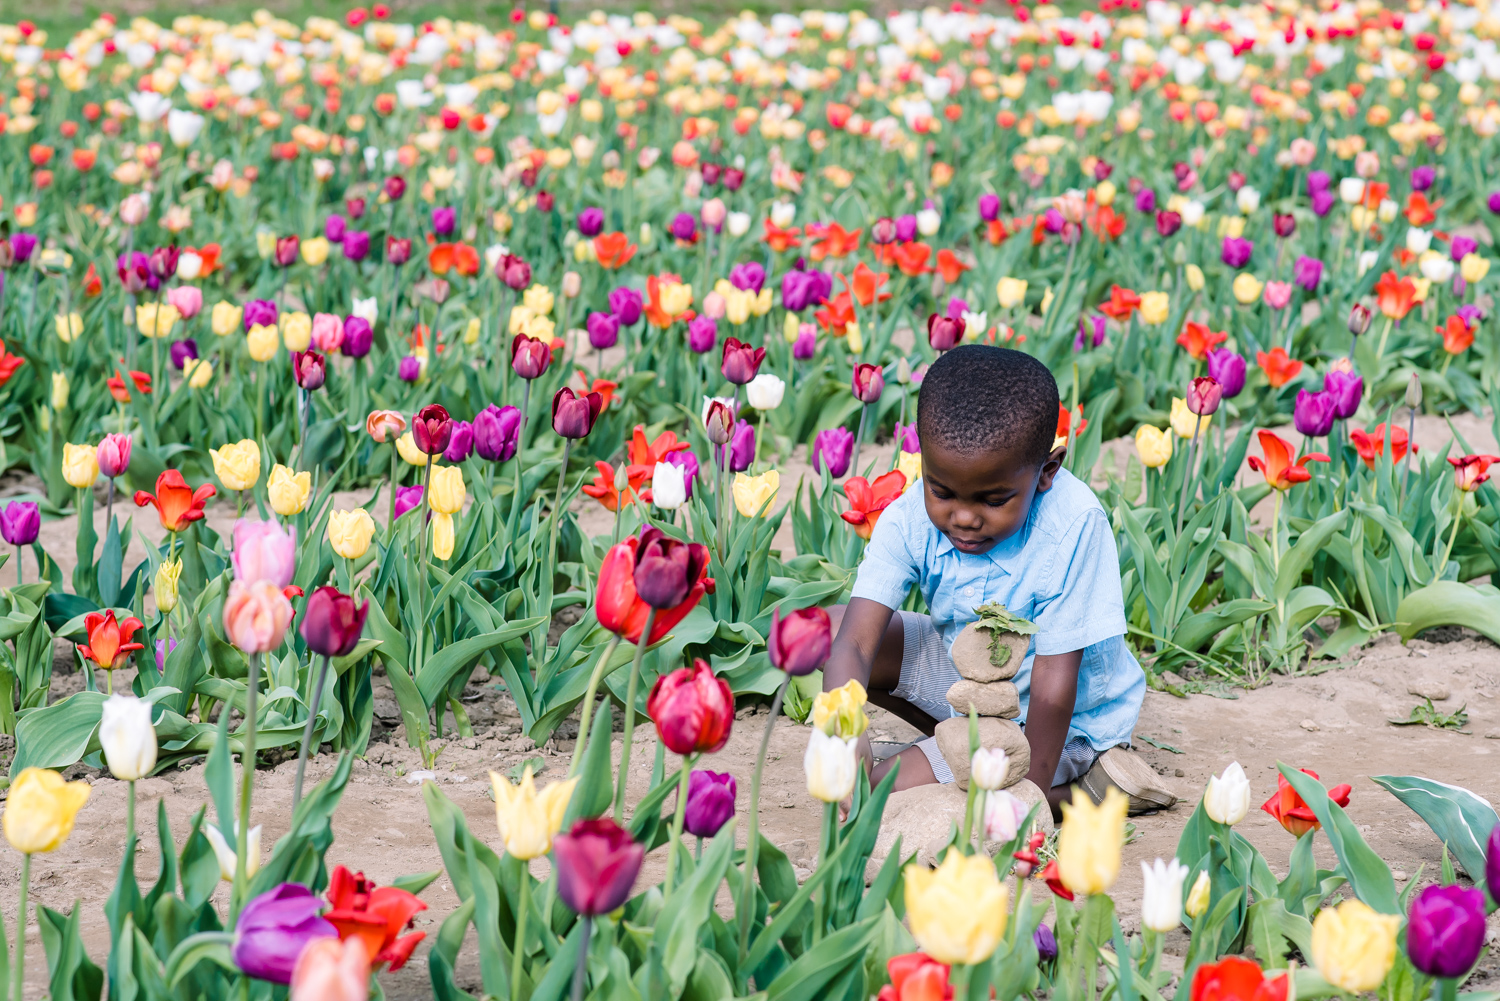 Little Boy at Wicked Tulip Farm Seraphine Photography (8 of 1).JPG